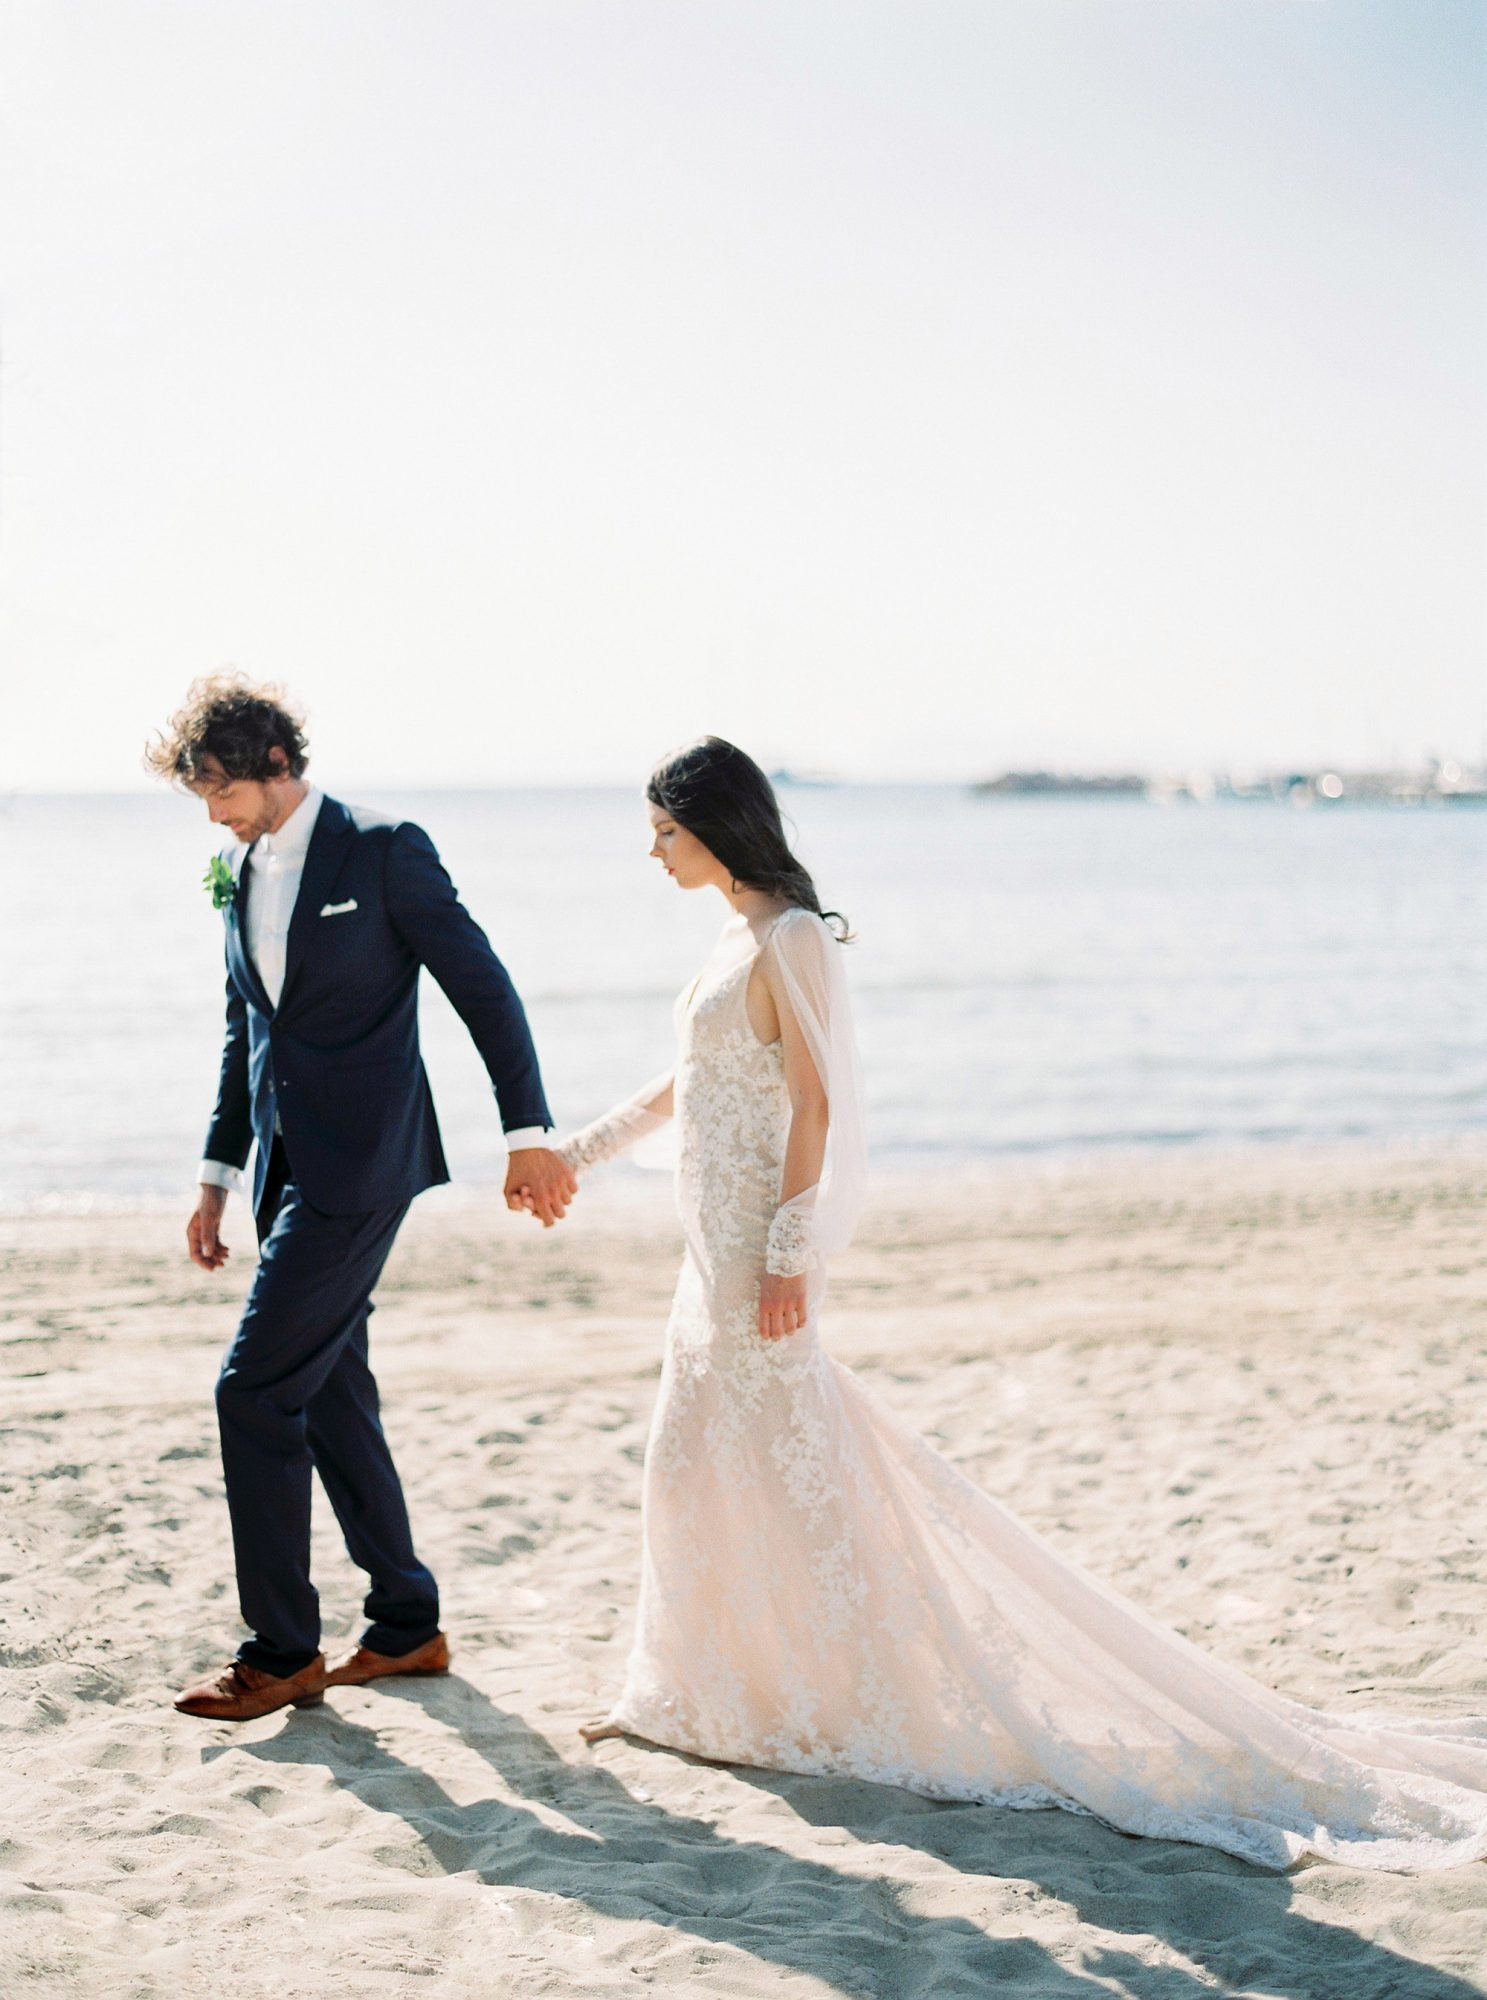 beach wedding dresses bride and groom holding hands on waters edge